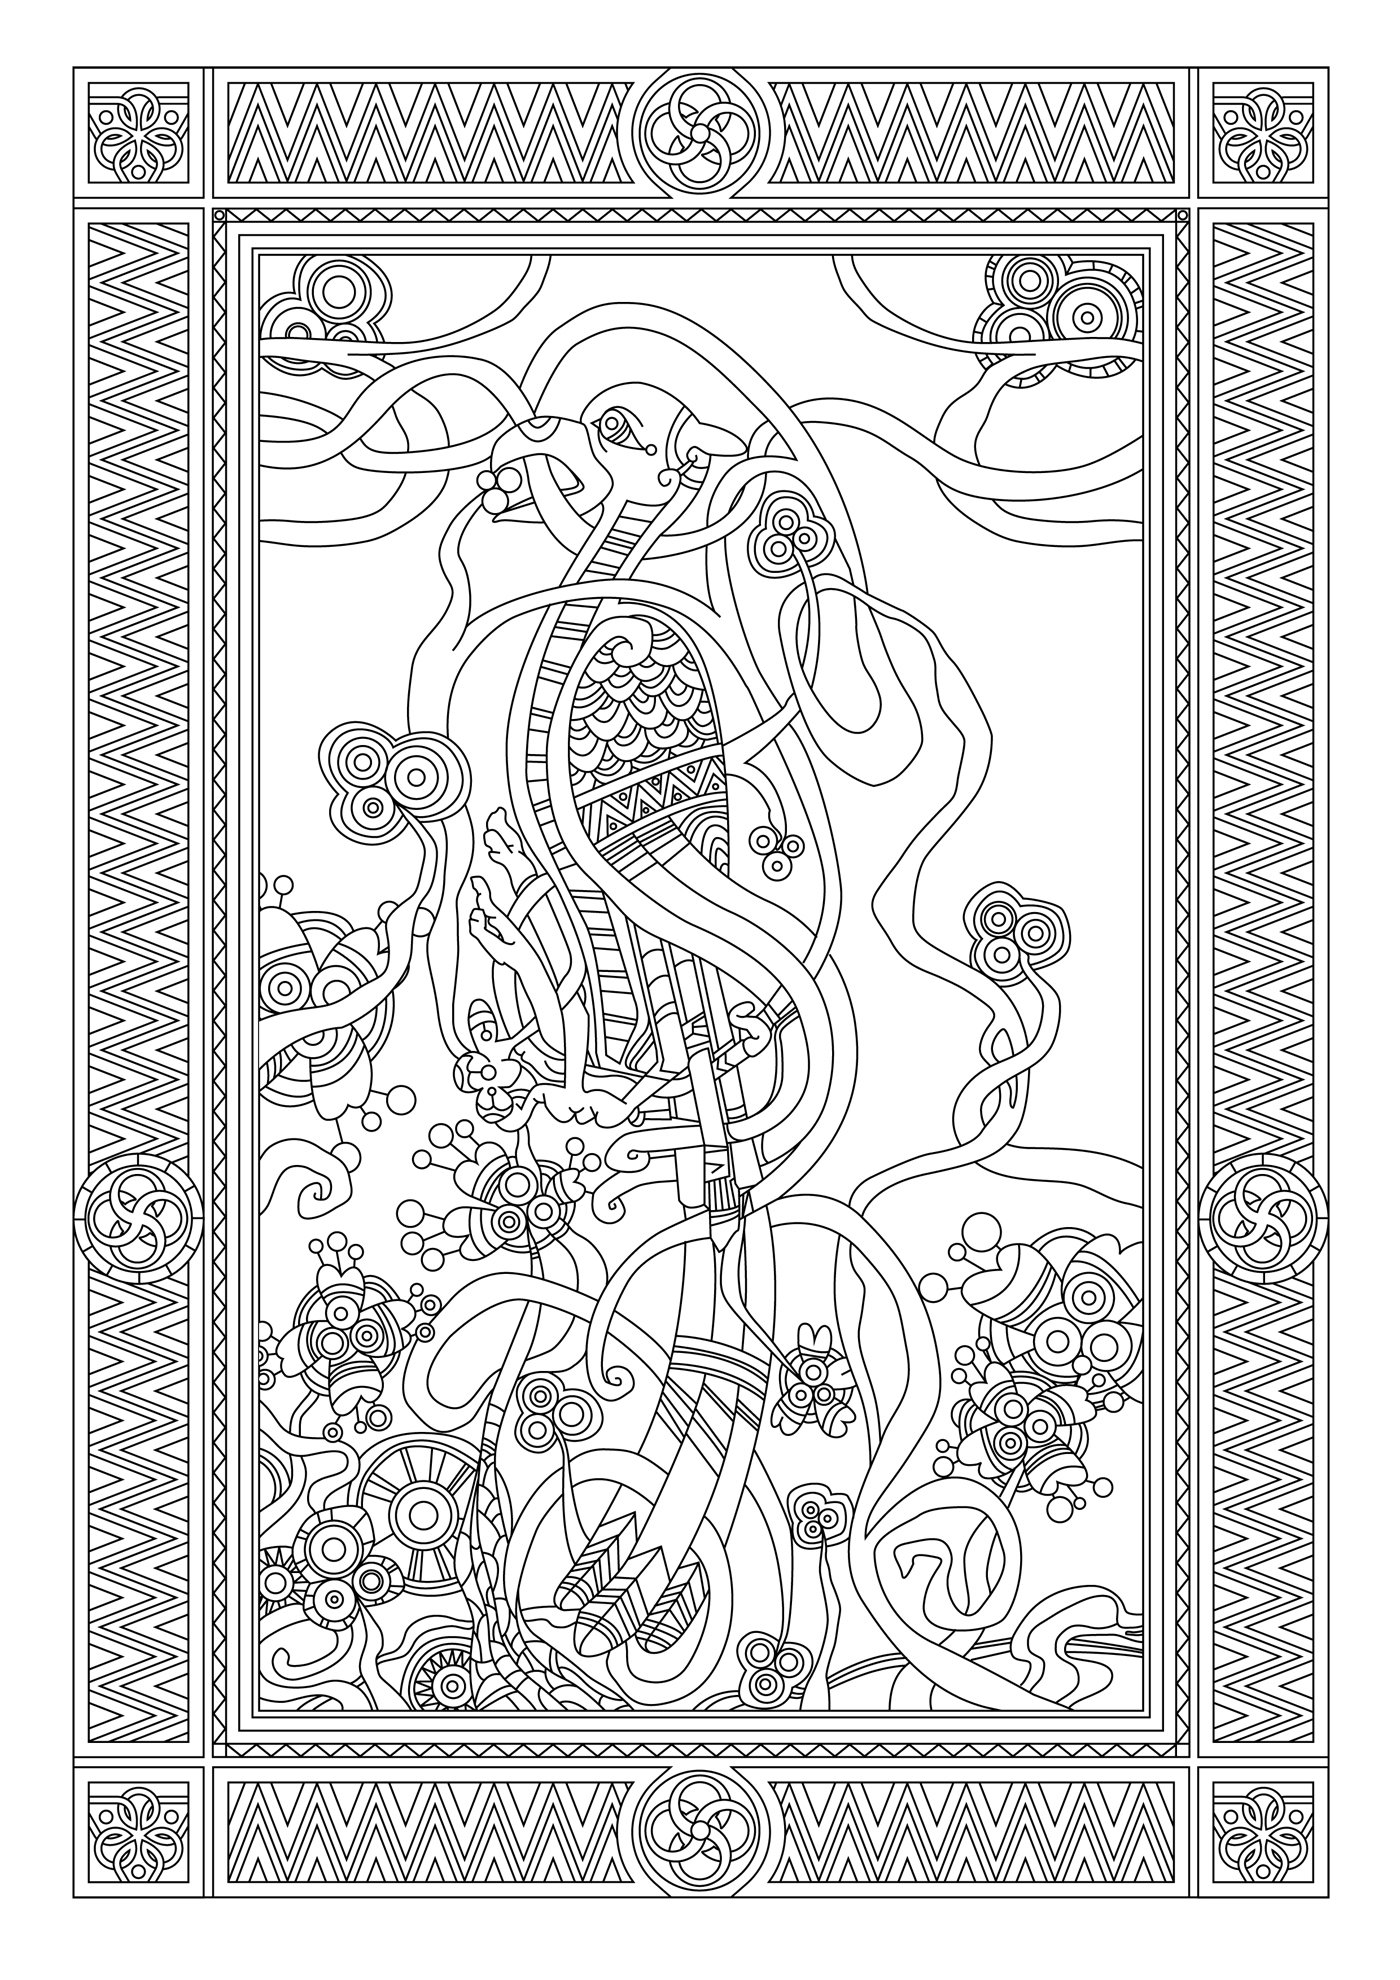 Anti-stress #126781 (Relaxation) - Printable coloring pages